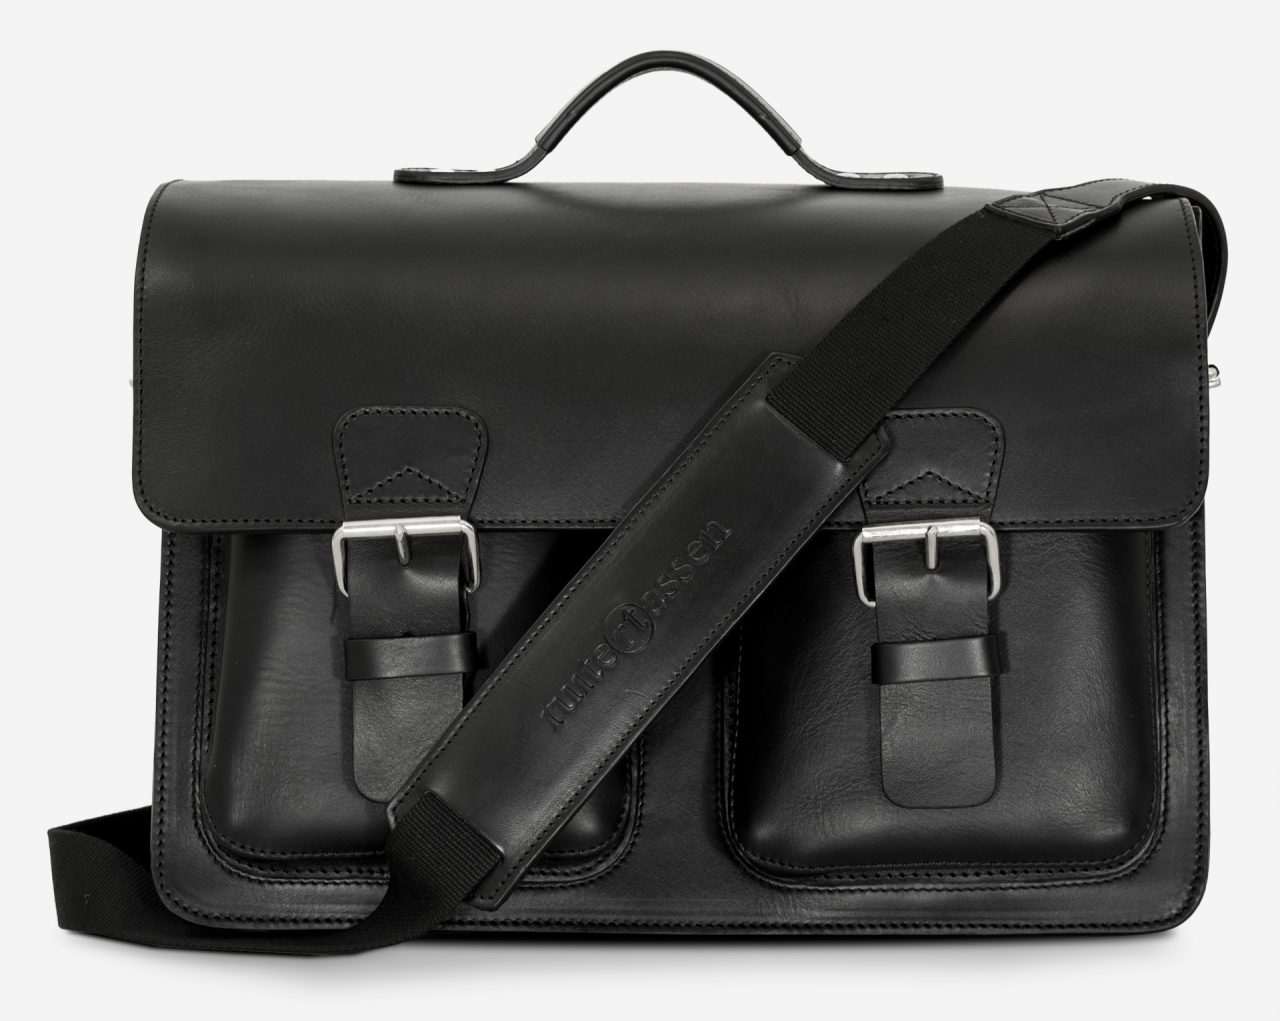 Front view of black leather laptop satchel bag with 3 gussets and symmetric front pockets 112358.